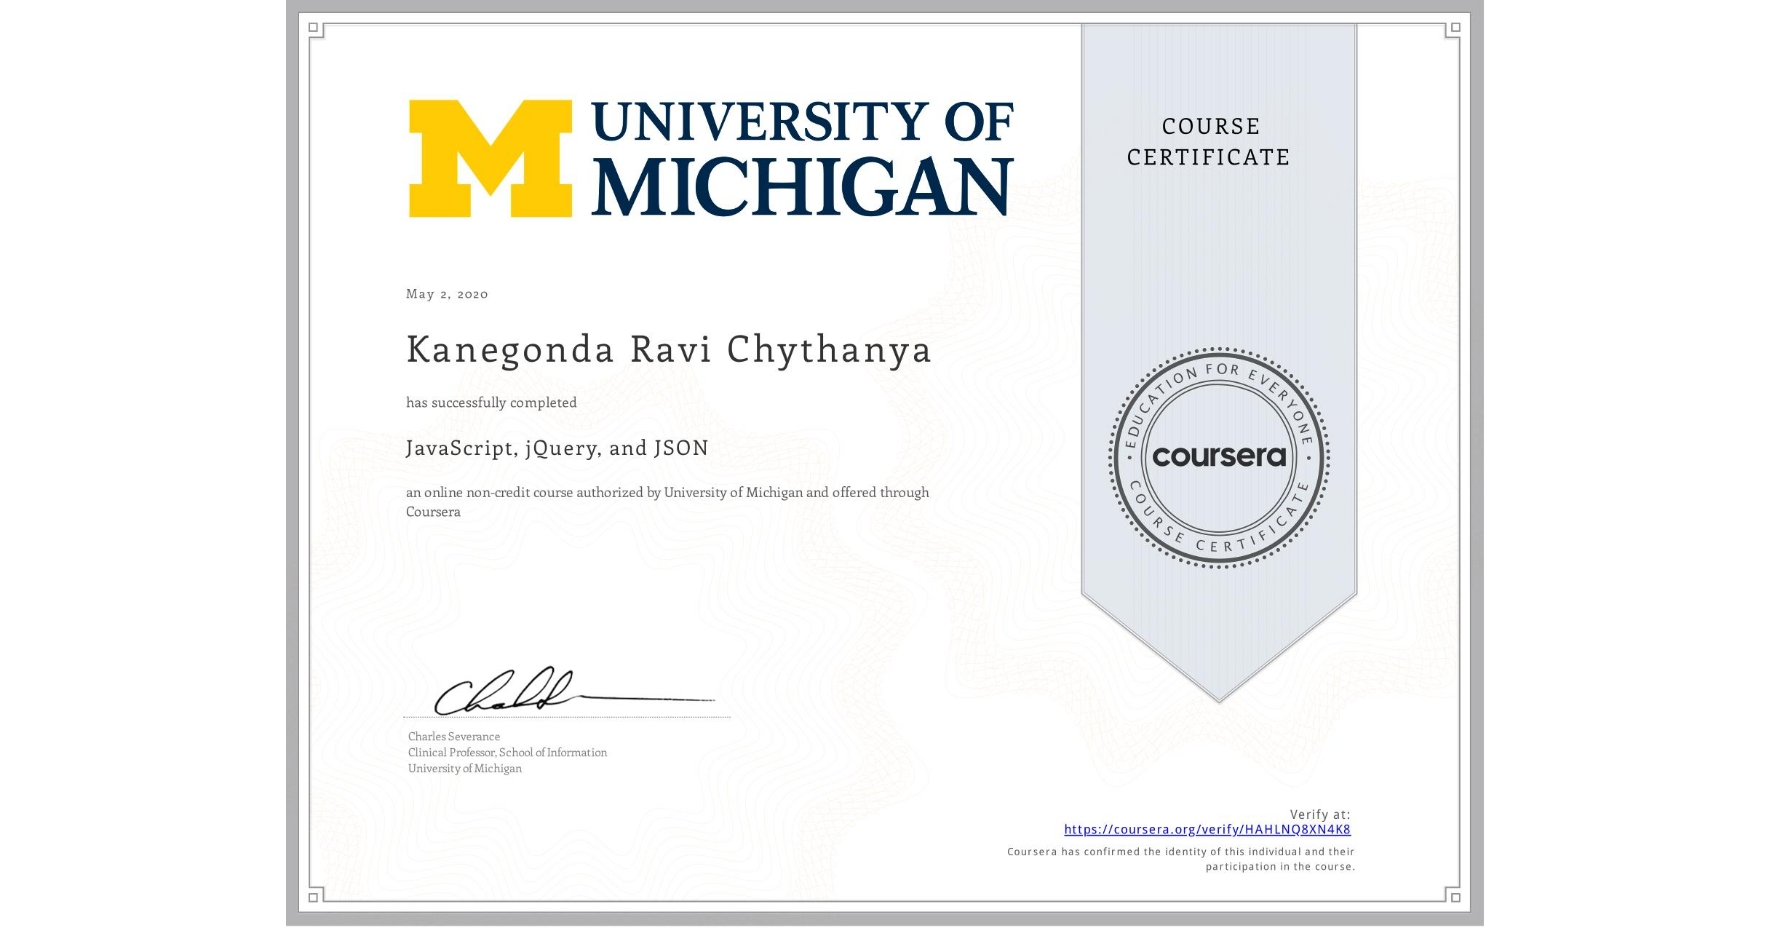 View certificate for Kanegonda Ravi Chythanya, JavaScript, jQuery, and JSON, an online non-credit course authorized by University of Michigan and offered through Coursera